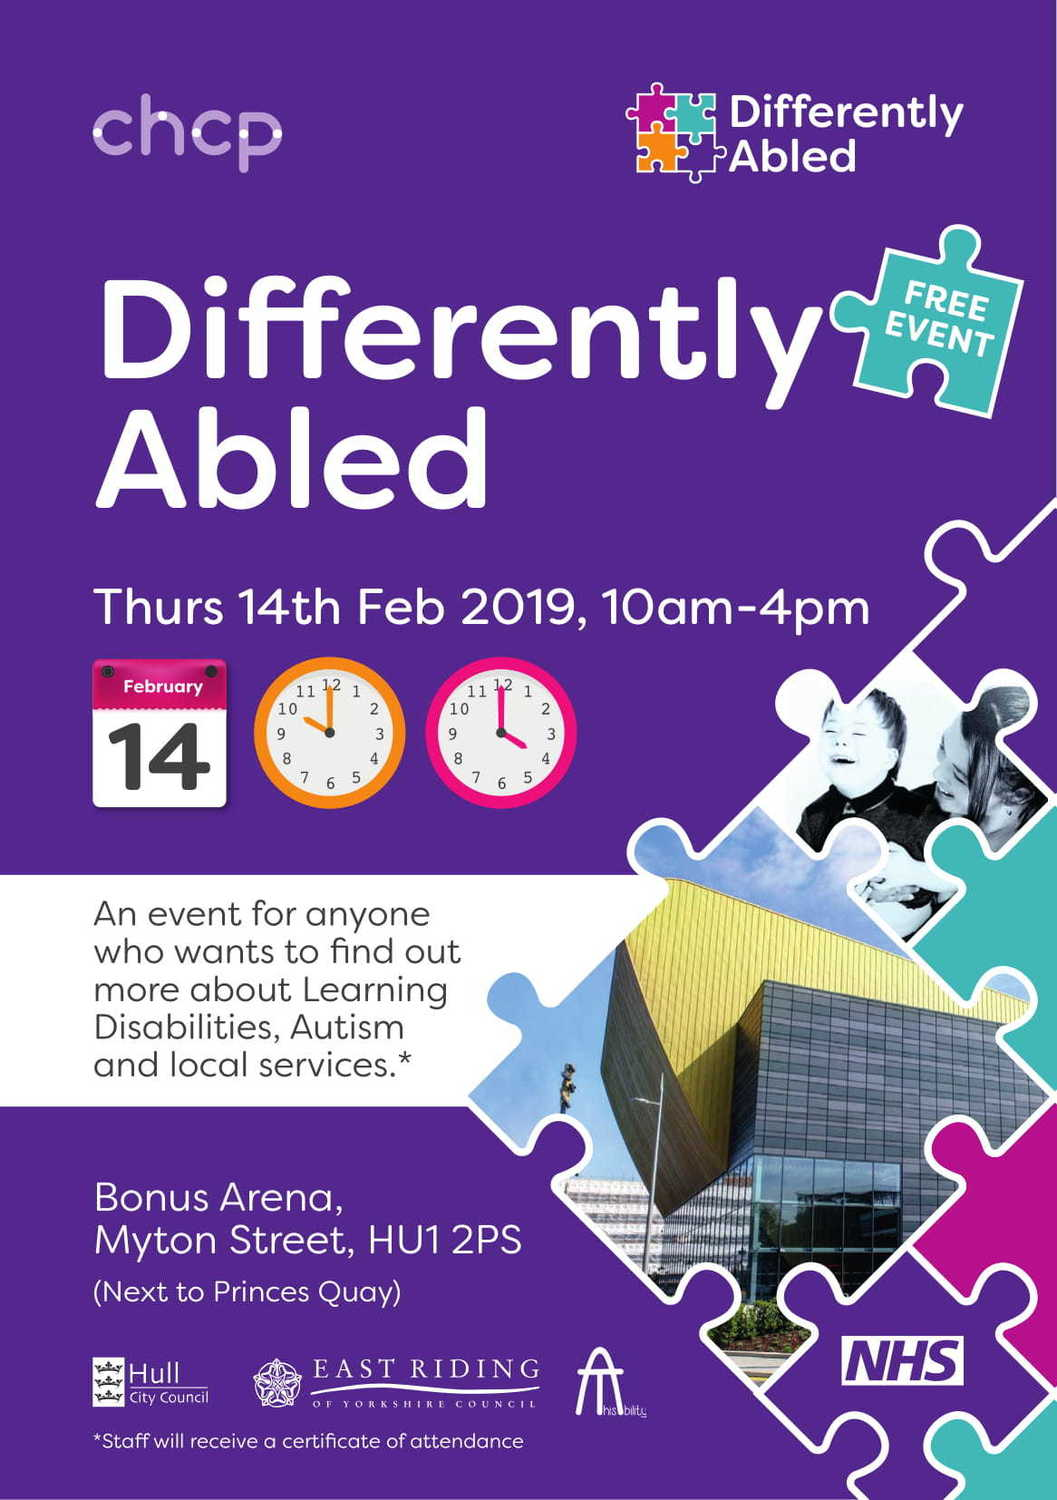 A5 Flyer Differently Abled 2019